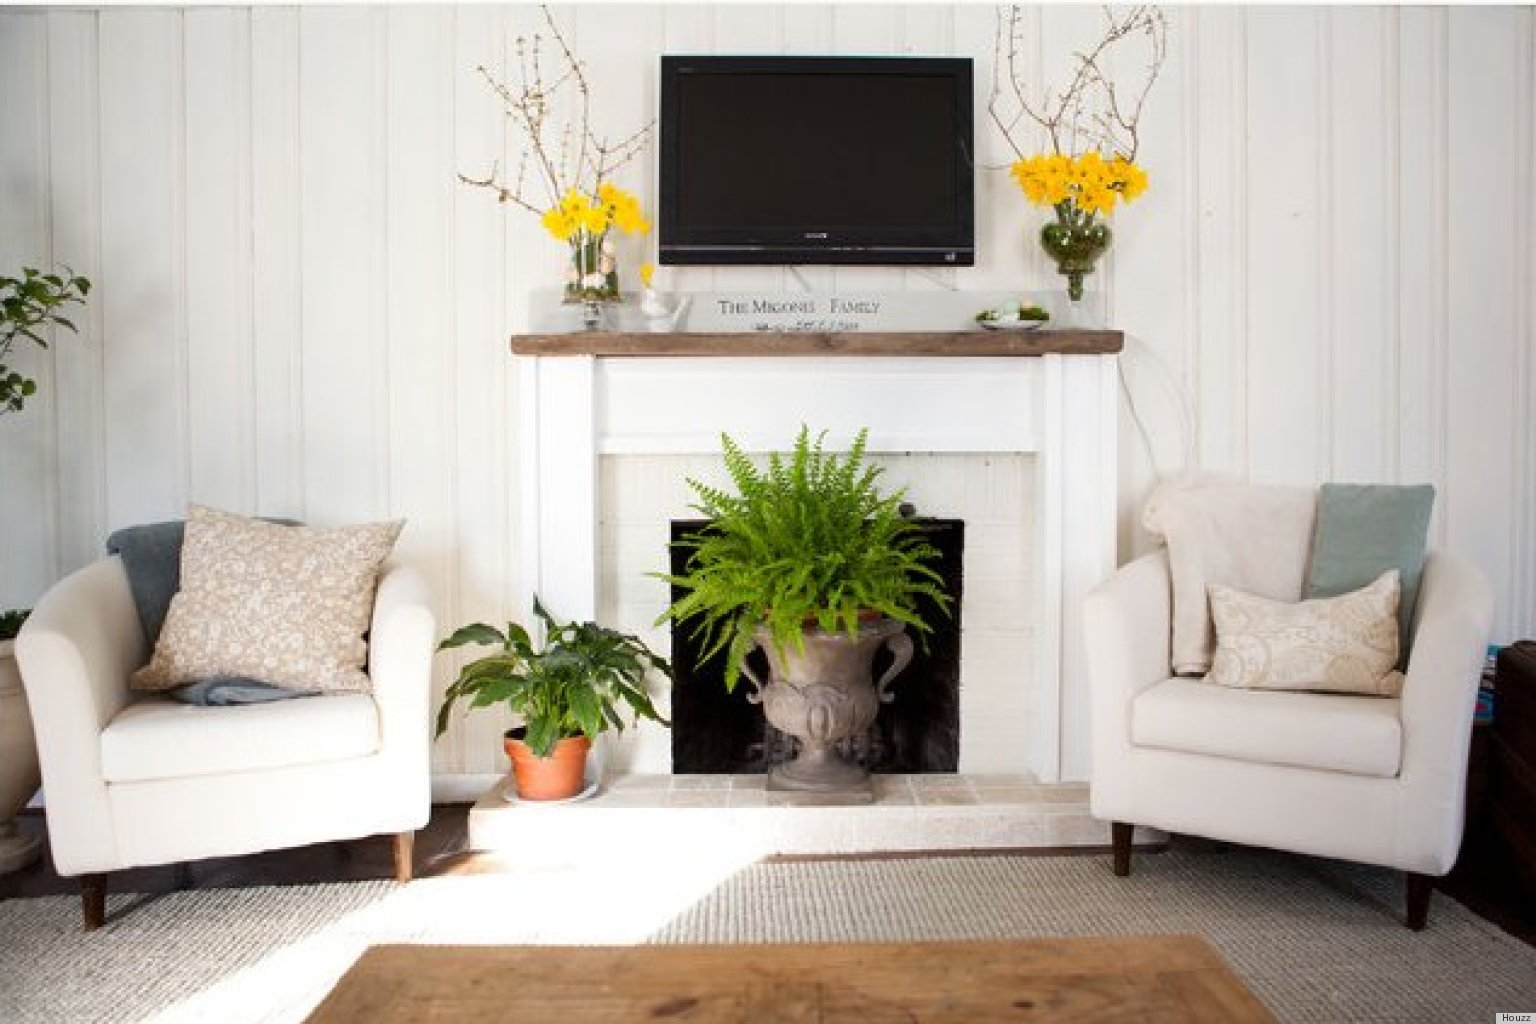 10 ways to decorate your fireplace in the summer since you wont need it anyway photos huffpost - Decorating Ideas For Living Rooms With Fireplaces